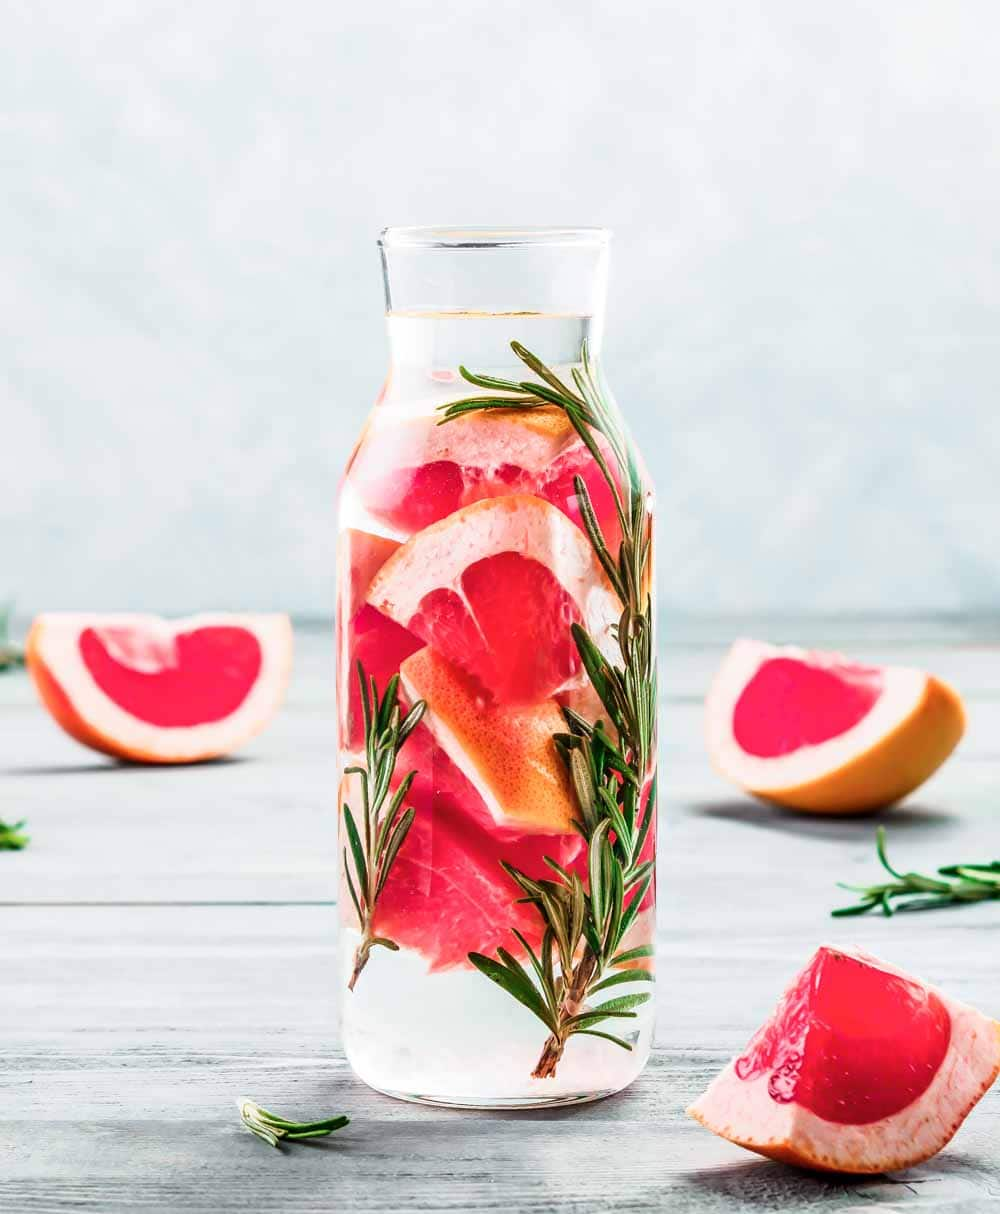 Instruction guide on making detox water for cleanse and weight loss